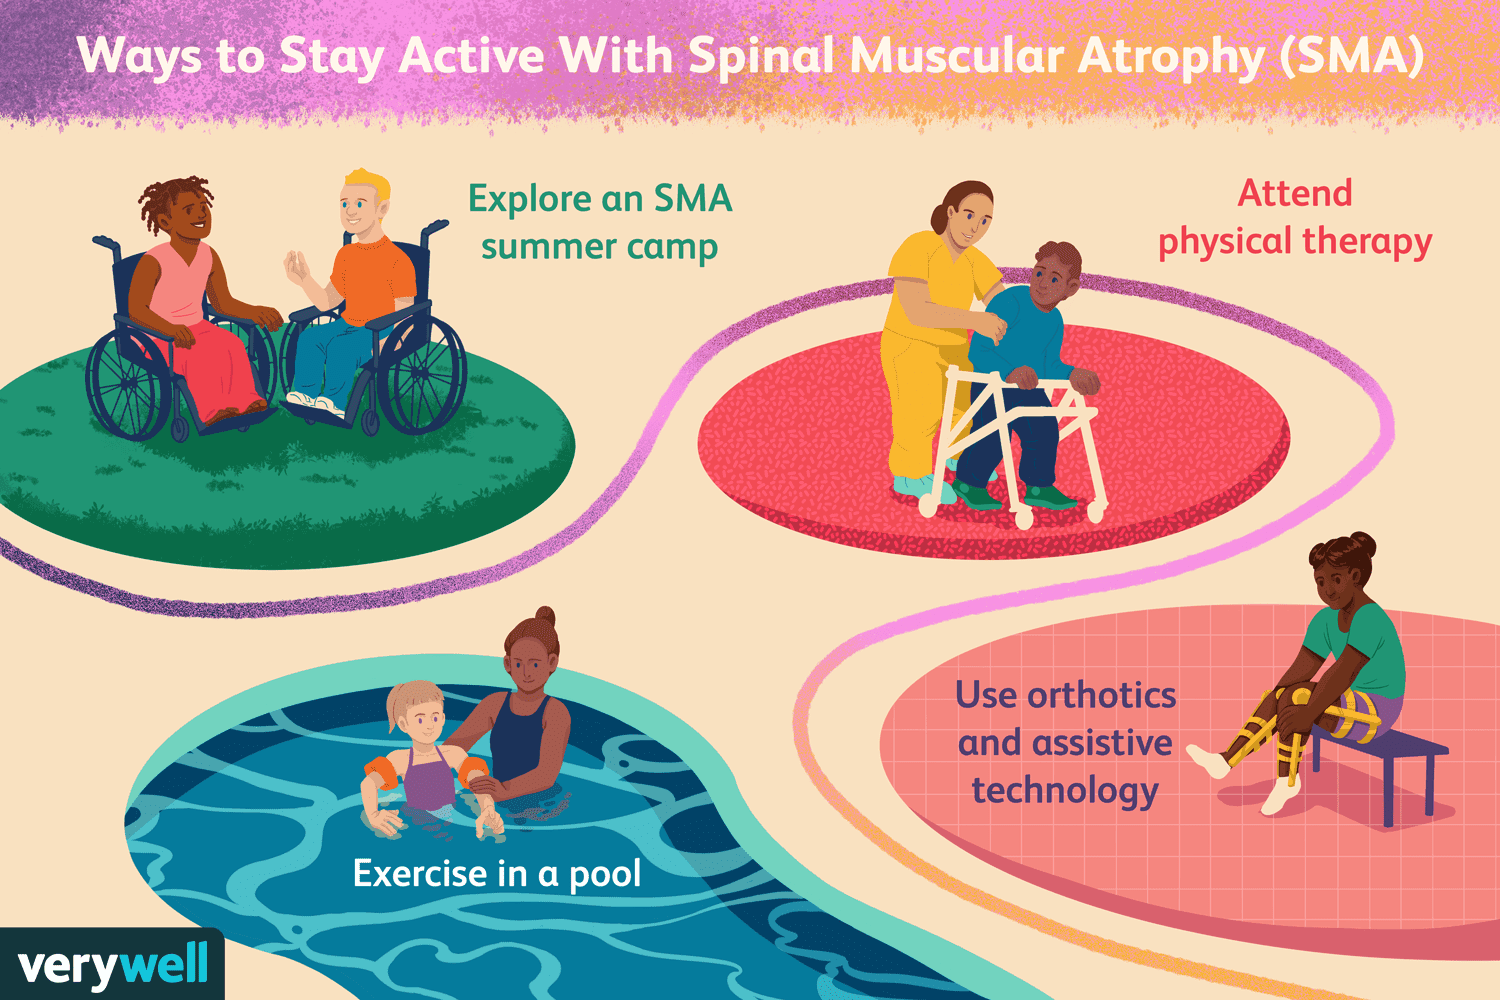 Ways to Stay Active with Spinal Muscular Atrophy (SMA)